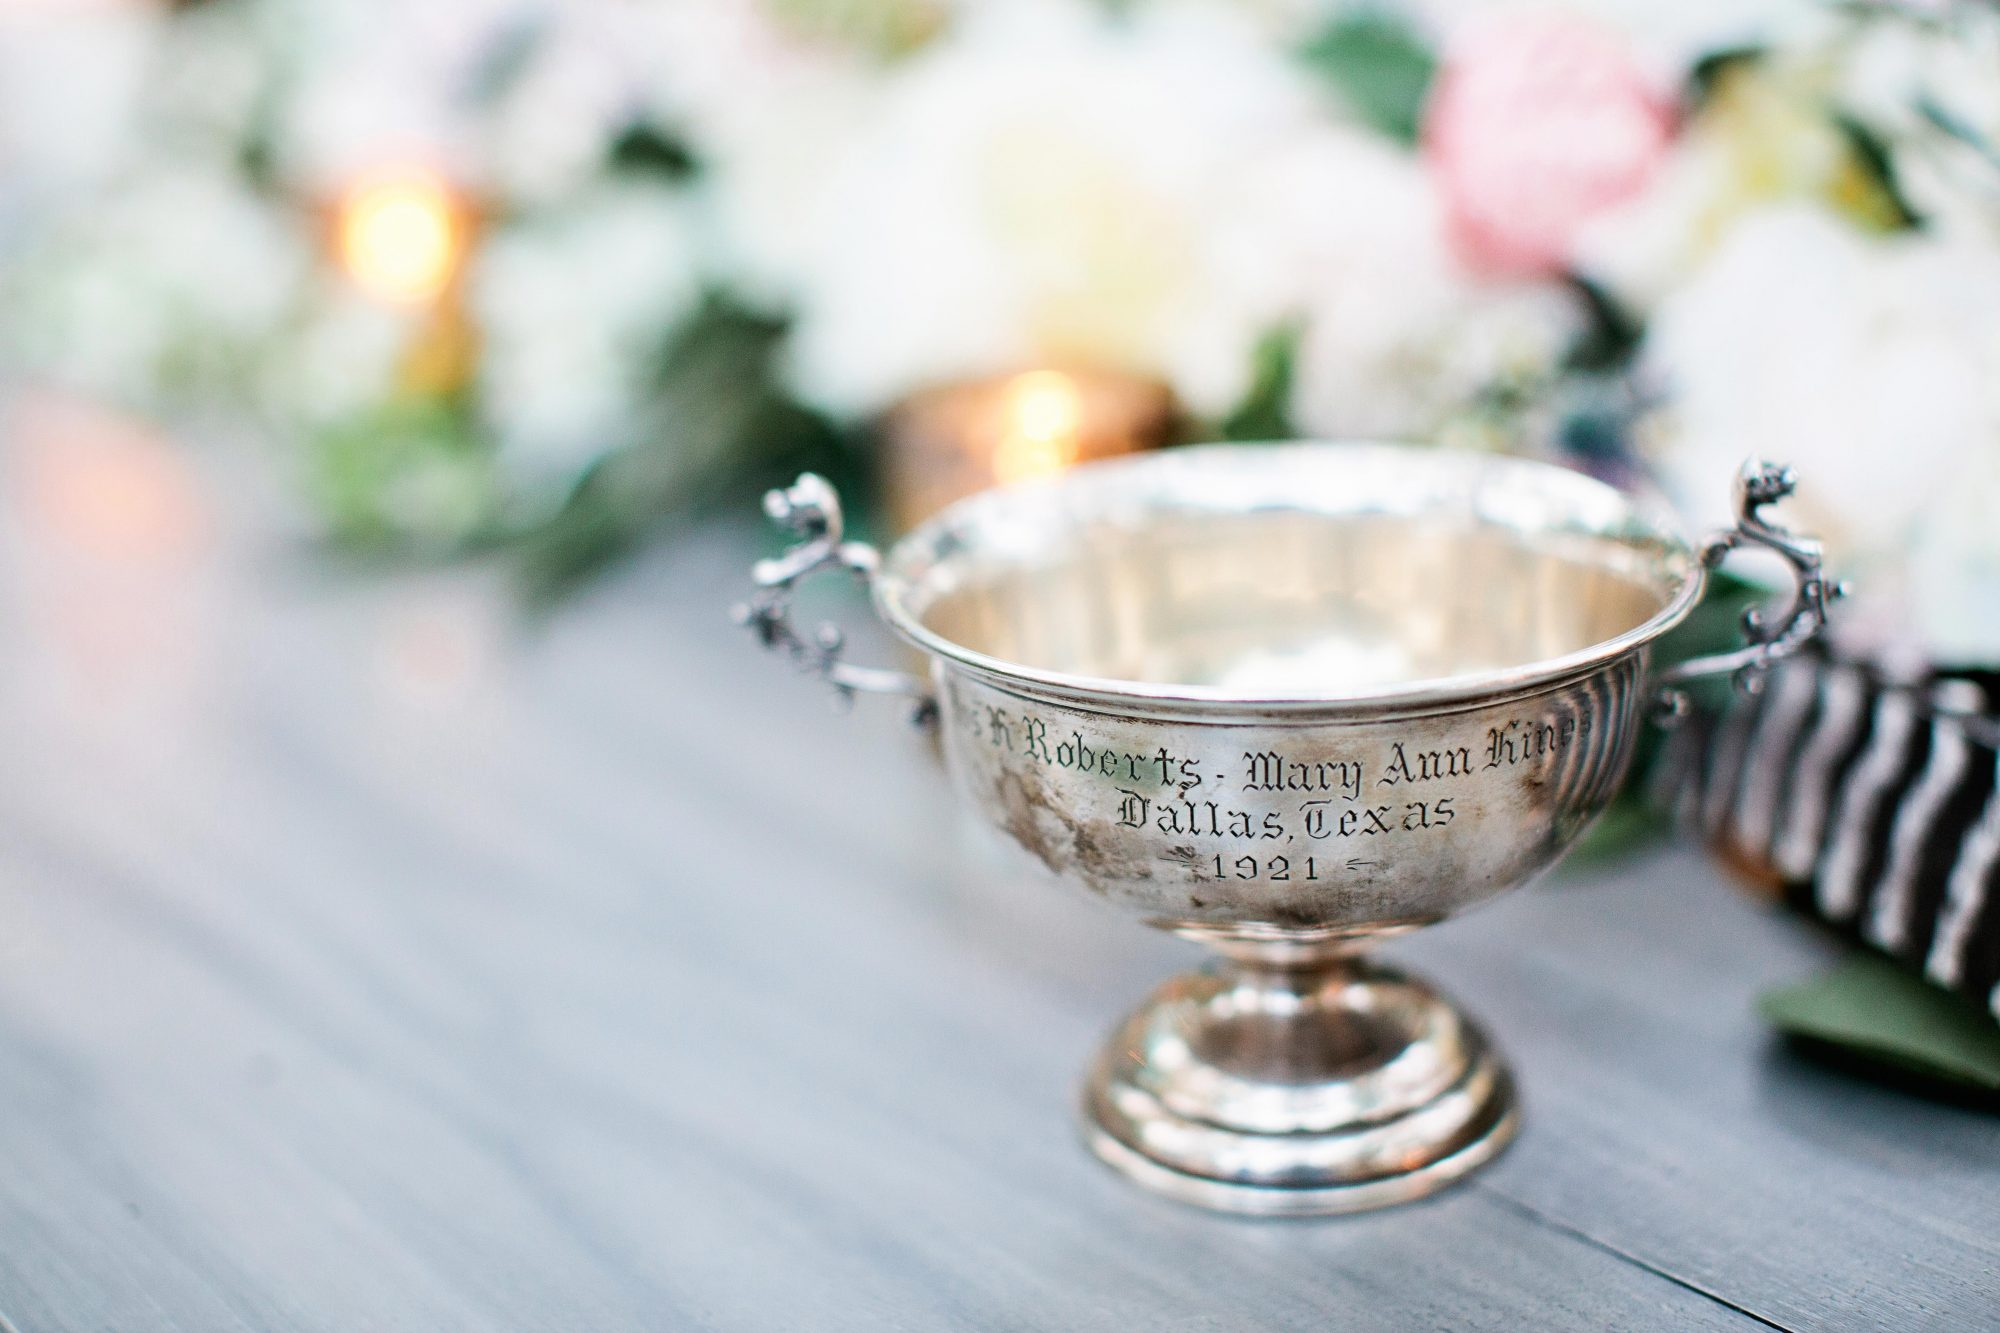 The Wedding Cup